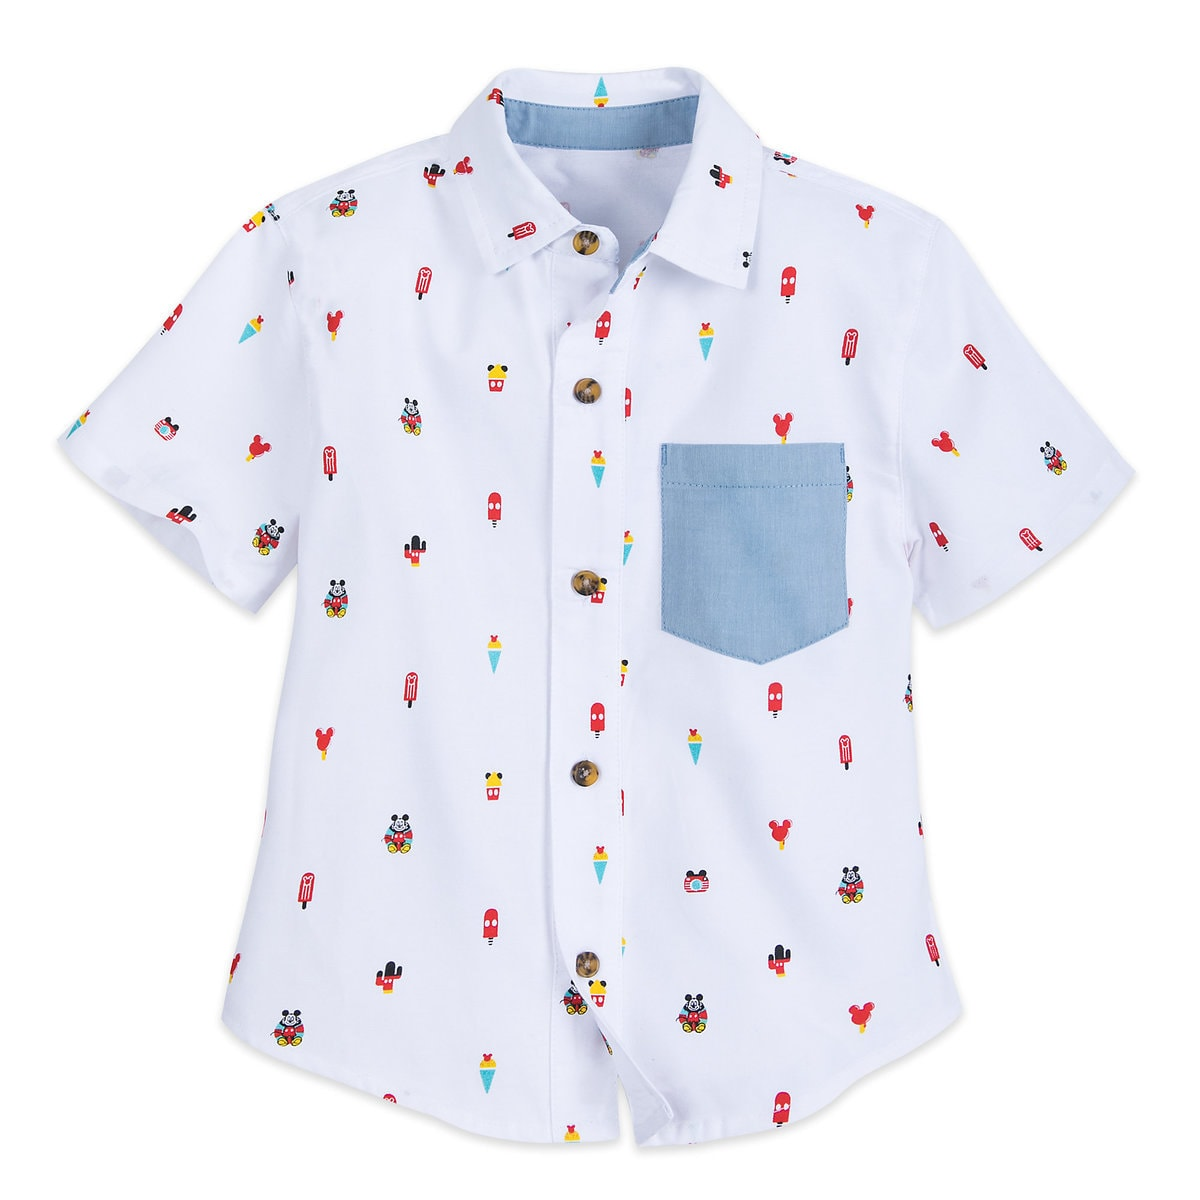 Disney Vacation Toddler Look-Book